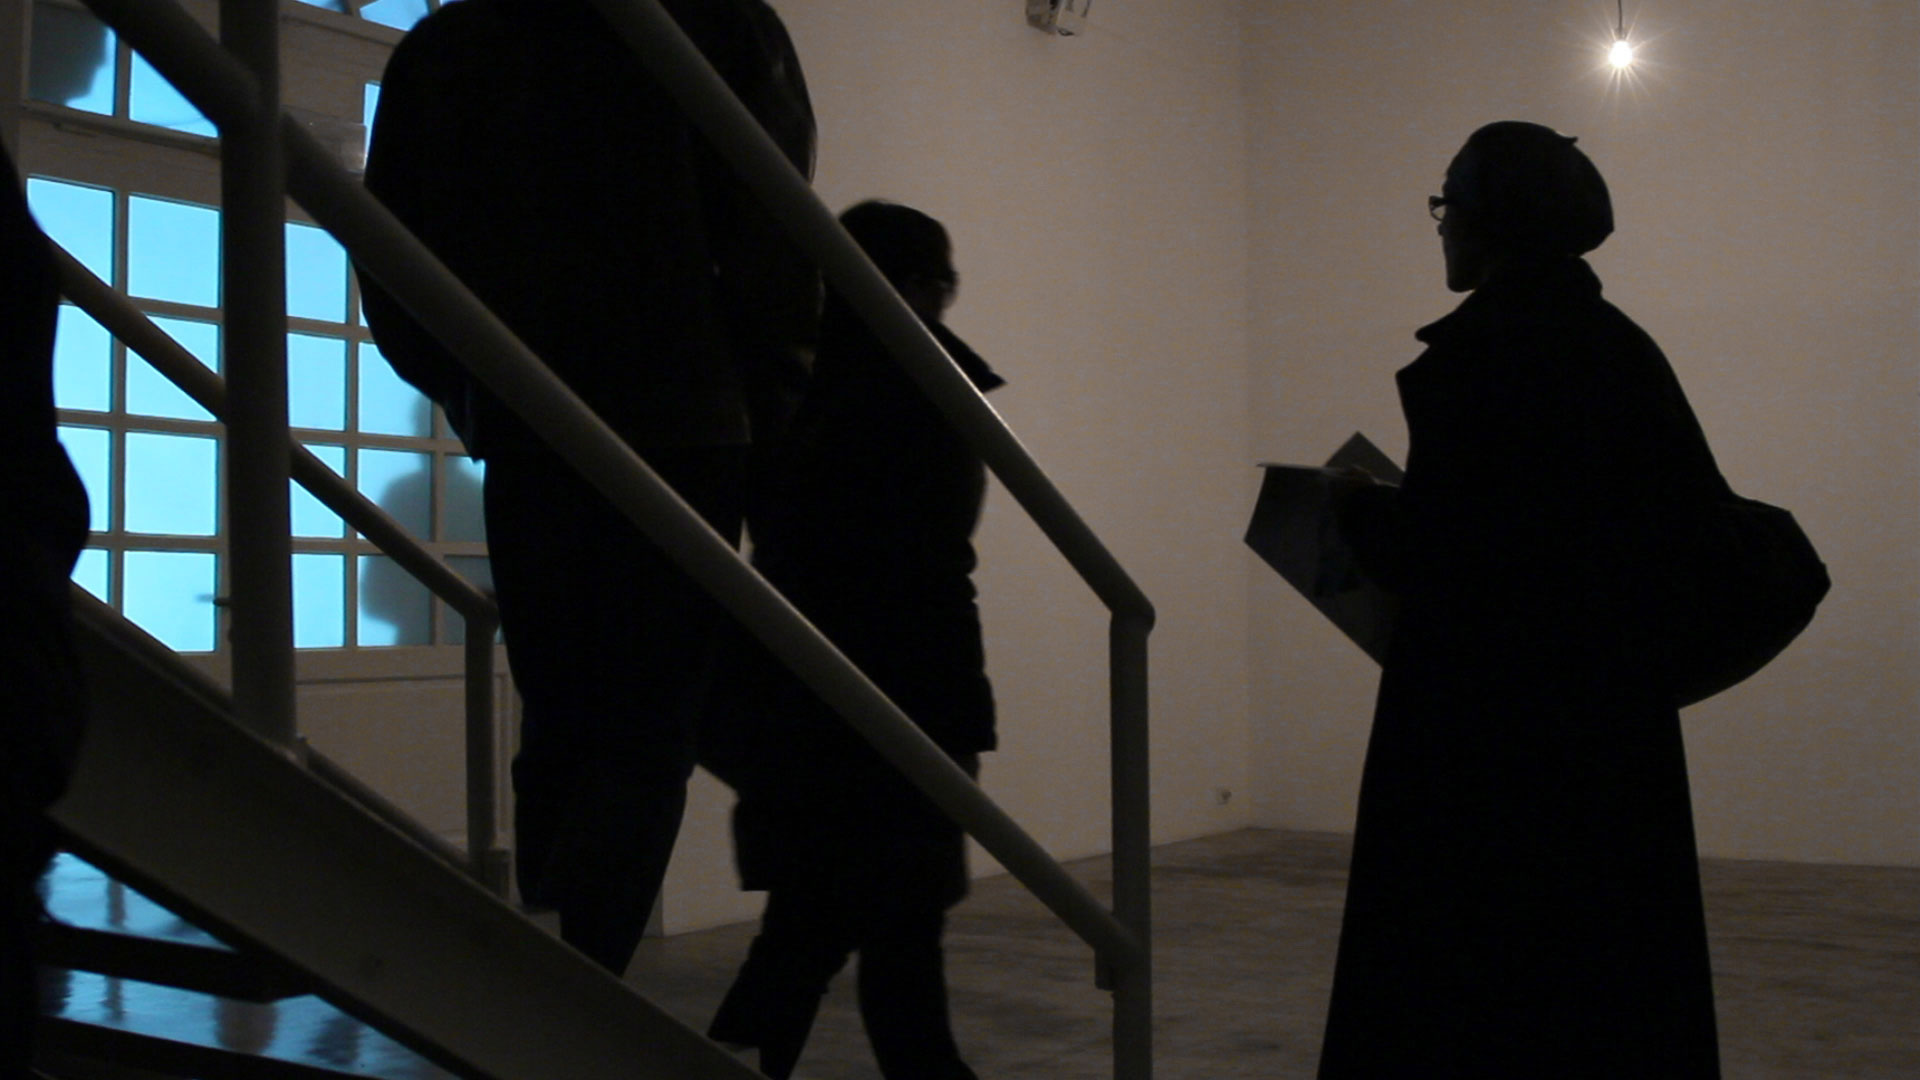 HR-Stamenov, PRESENCE, 2011, interactive ambient, video and light installation with sound, Studio Tommaseo, Trieste